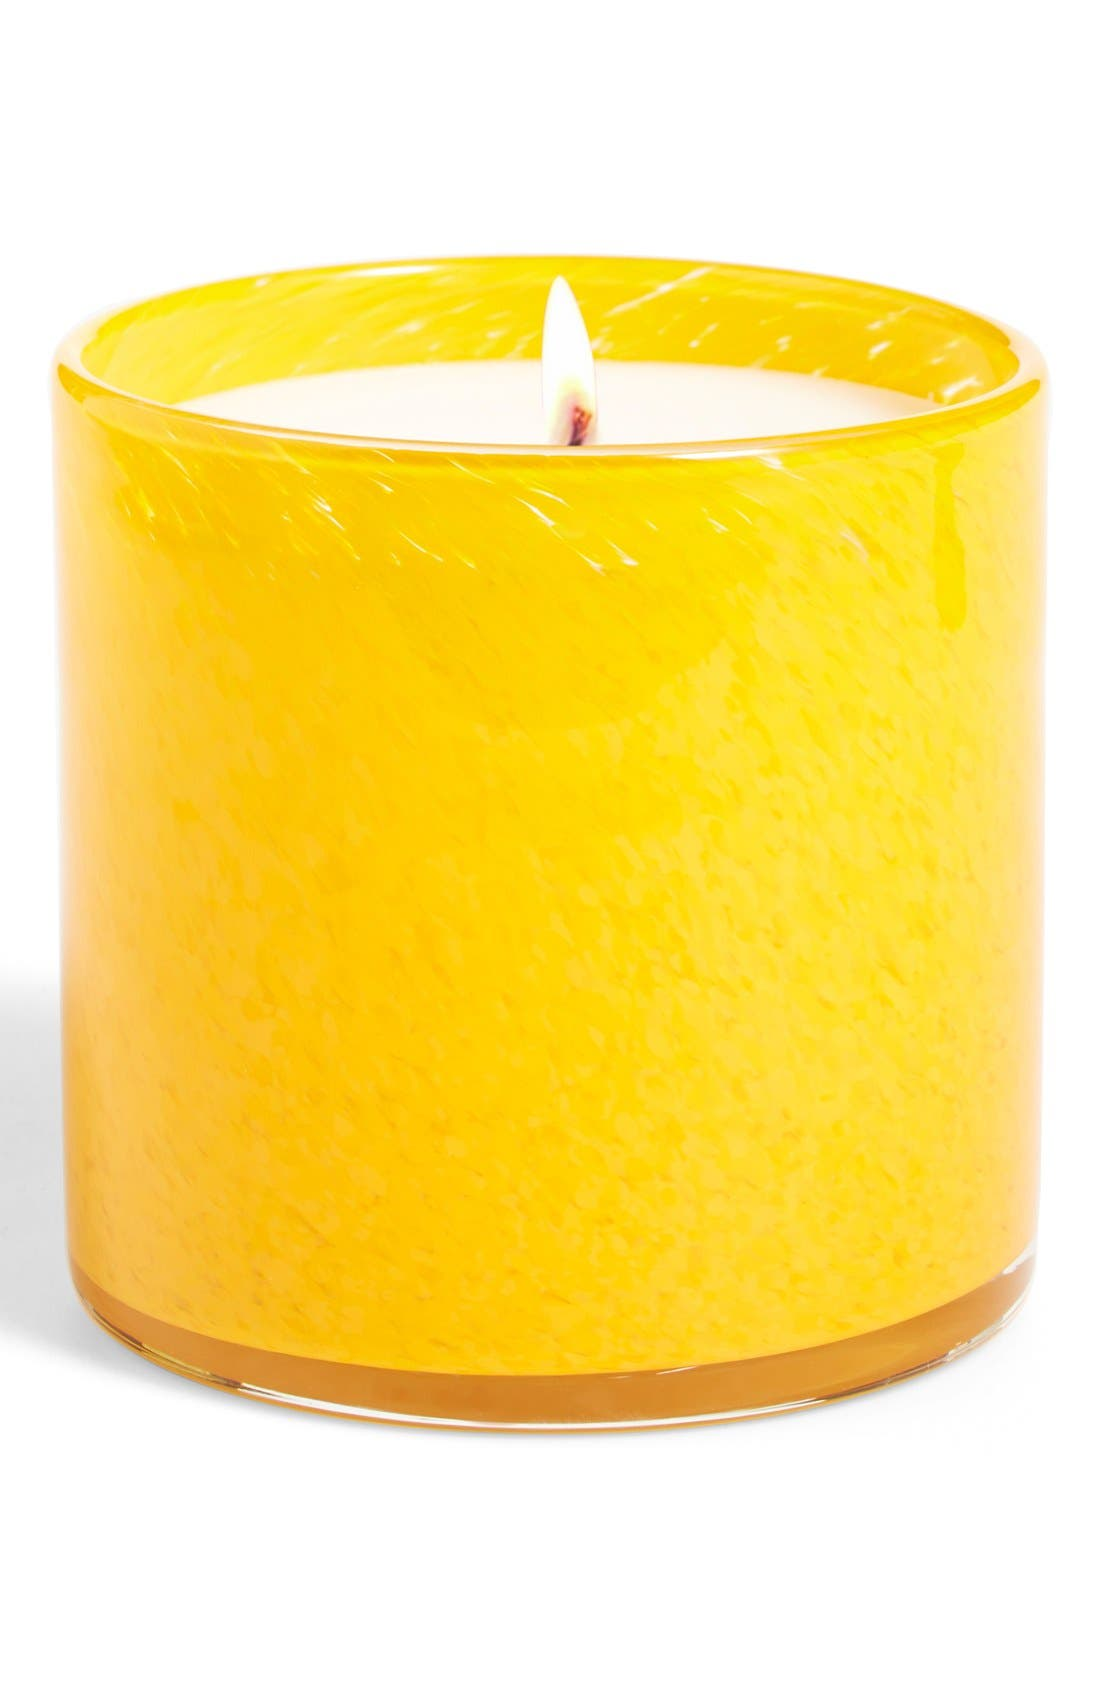 Alternate Image 1 Selected - Lafco 'Moonglow Apricot - Sunroom' Candle